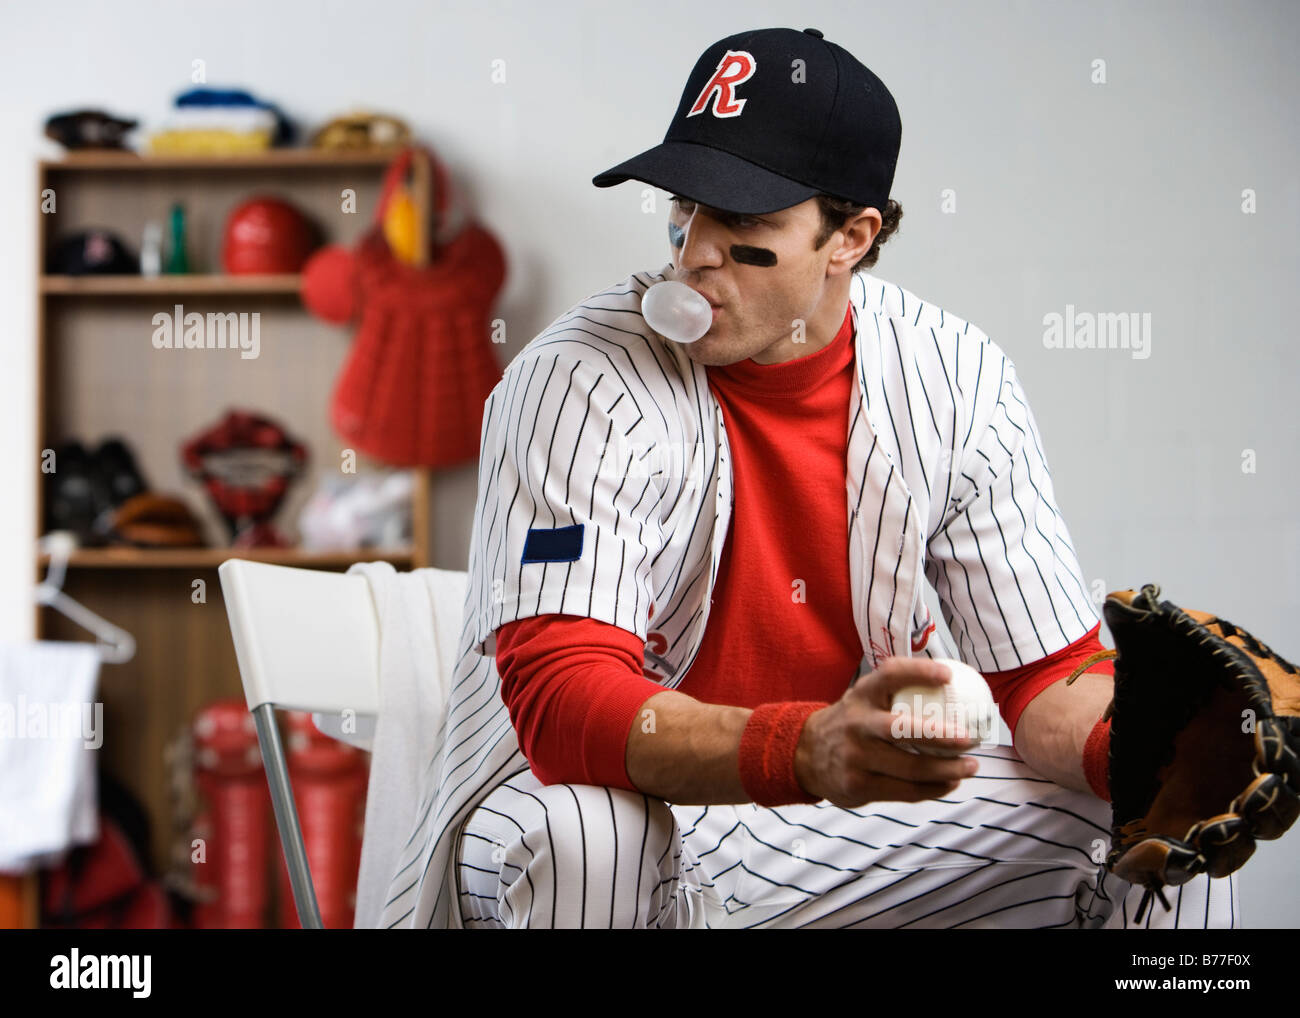 Baseball Player Blowing Bubble Gum Locker Room